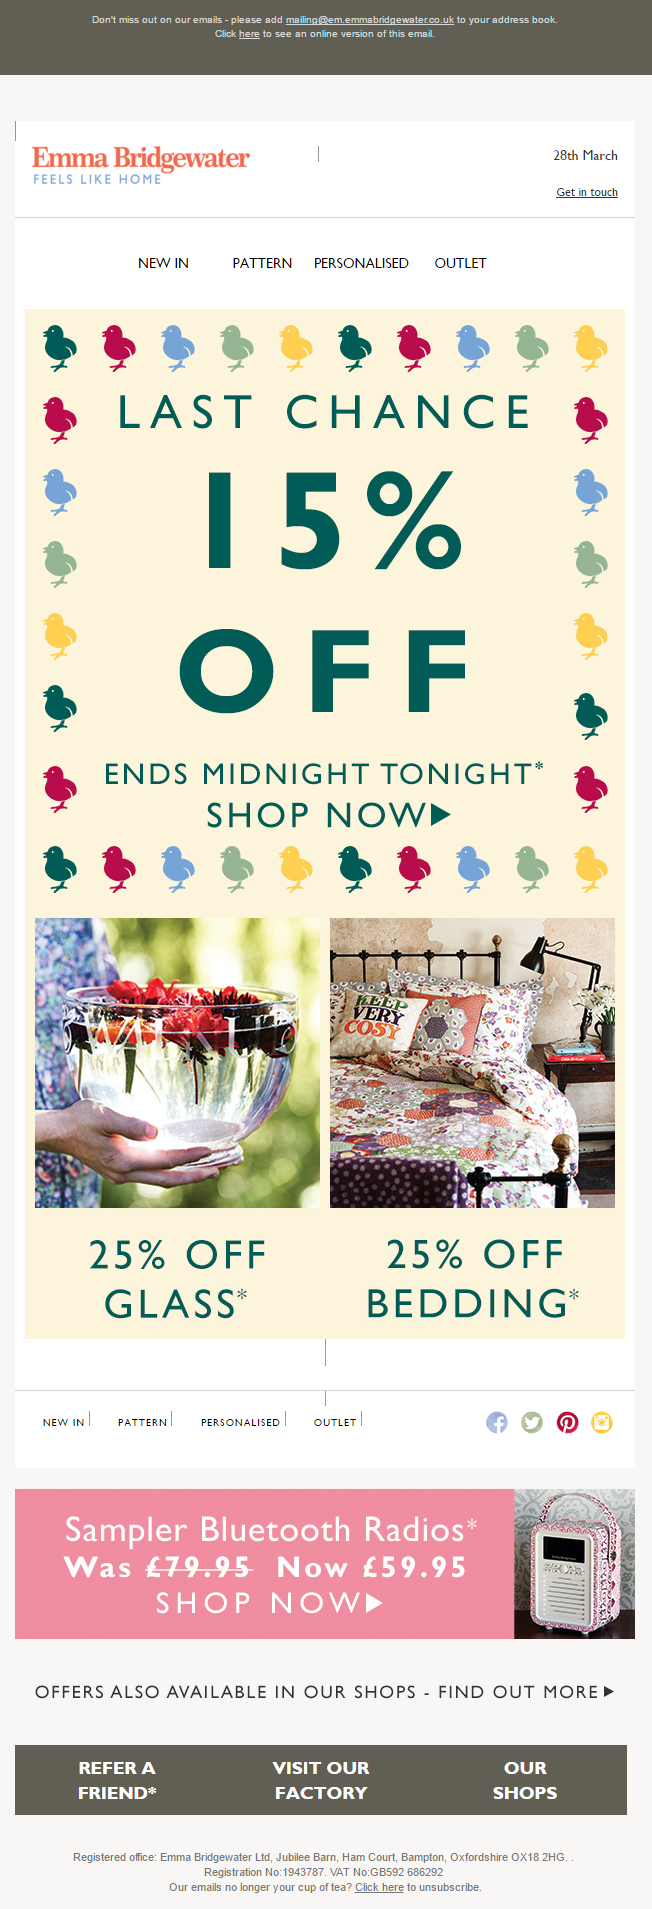 Last chance 15 off email from emma bridgewater for easter mugs personalised gifts teapots at emma bridgewater negle Choice Image